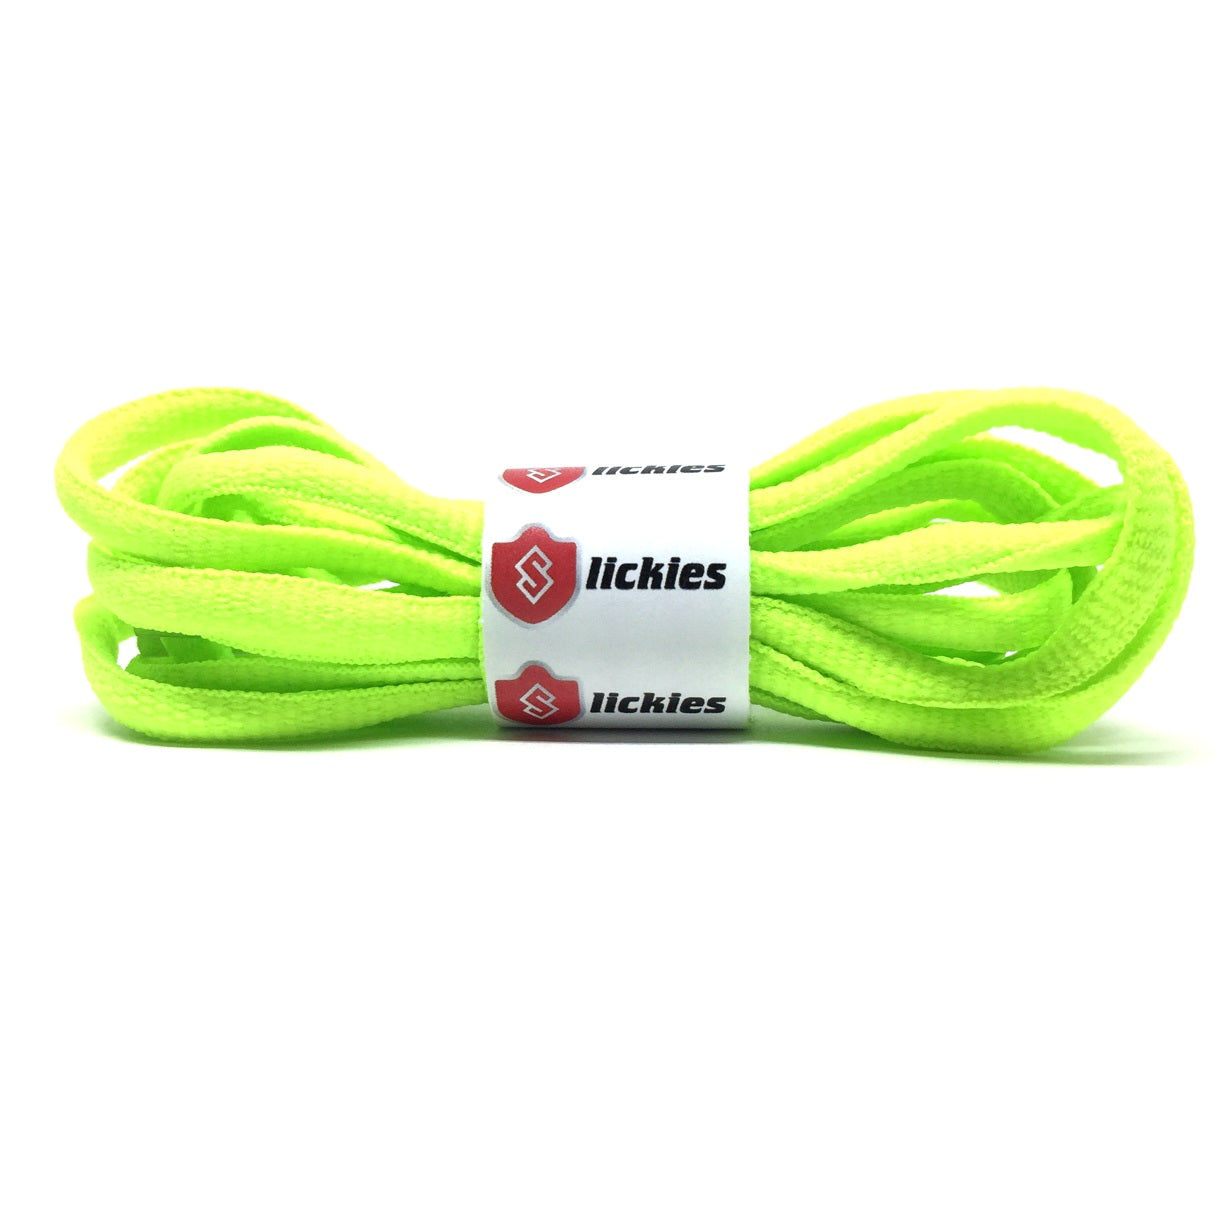 33261a0c6e540 BASICS Oval Laces - Neon Green - Slickies